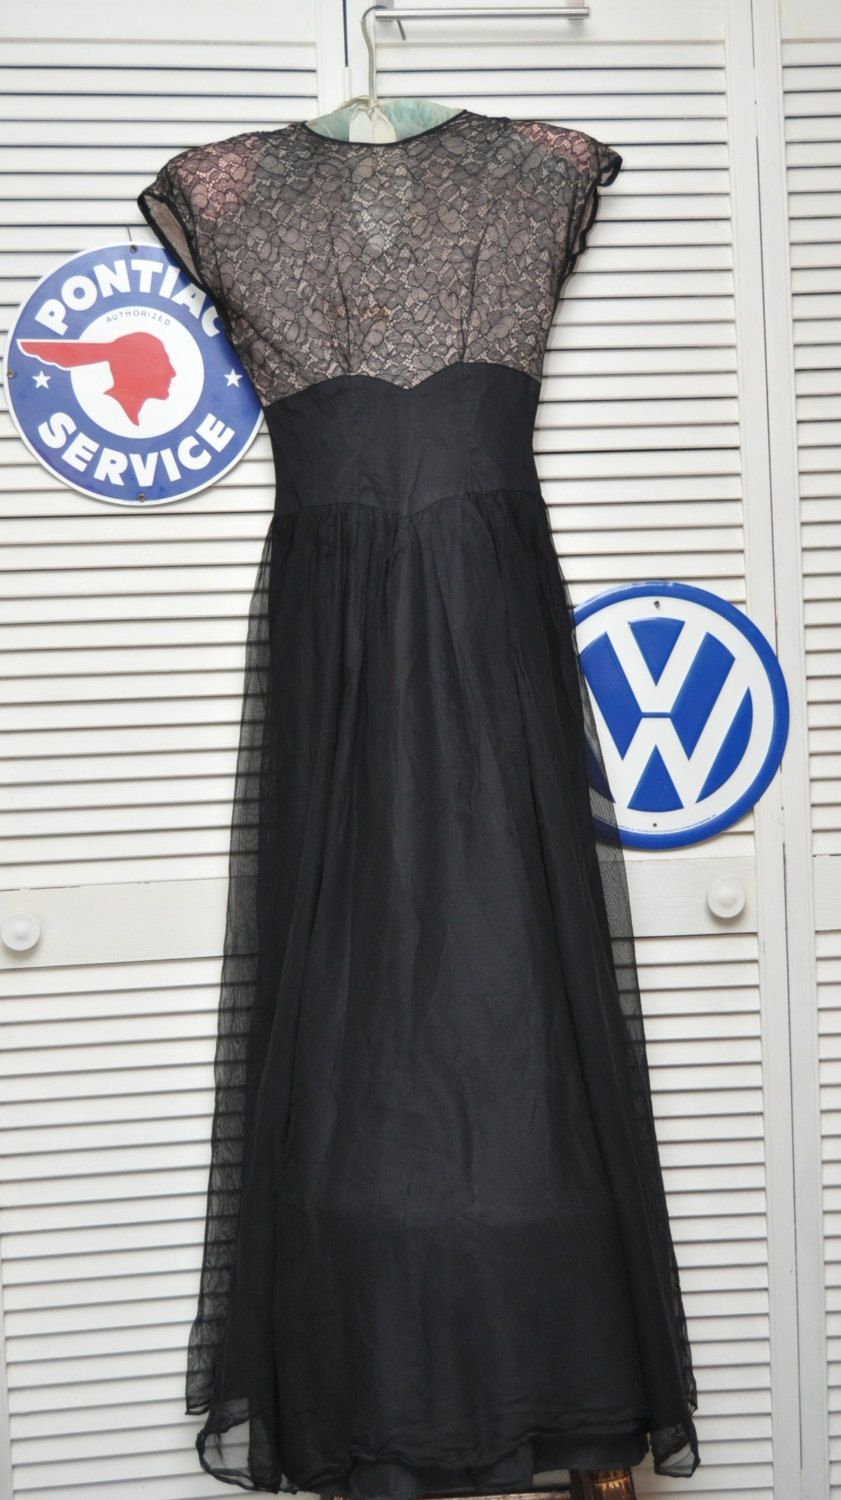 Vintage Womens Teens 40s 50s Dress Formal Gown Full Length XS 0 Lace ...